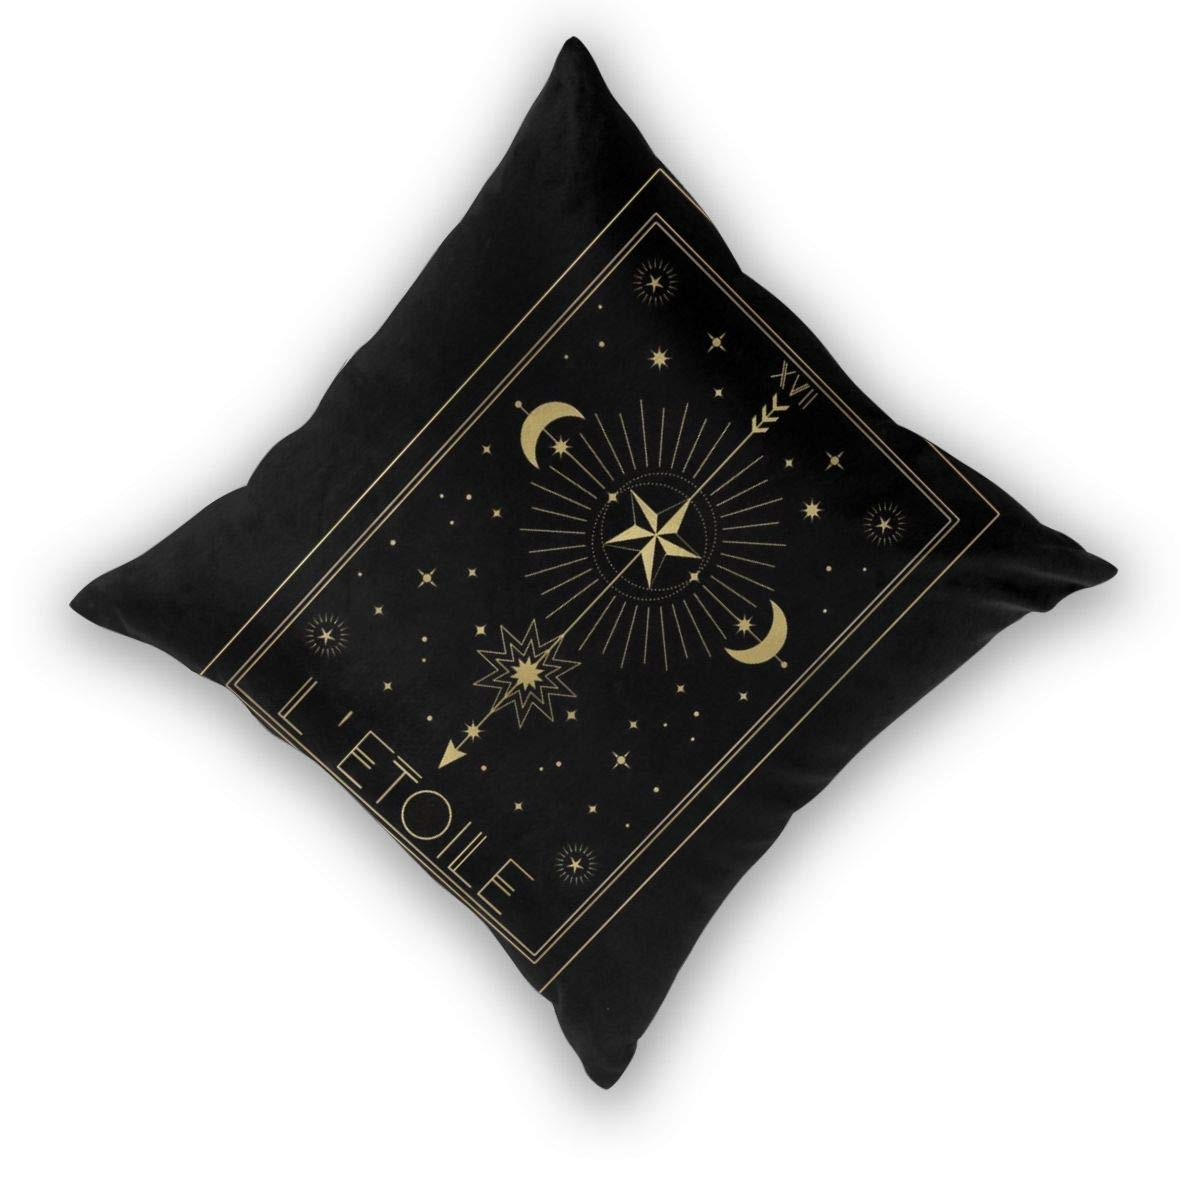 Cushion Covers Pack of 2 Cushion Covers Throw Pillow Cases Shells for Couch Sofa Home Decor Letoile Or The Star ...